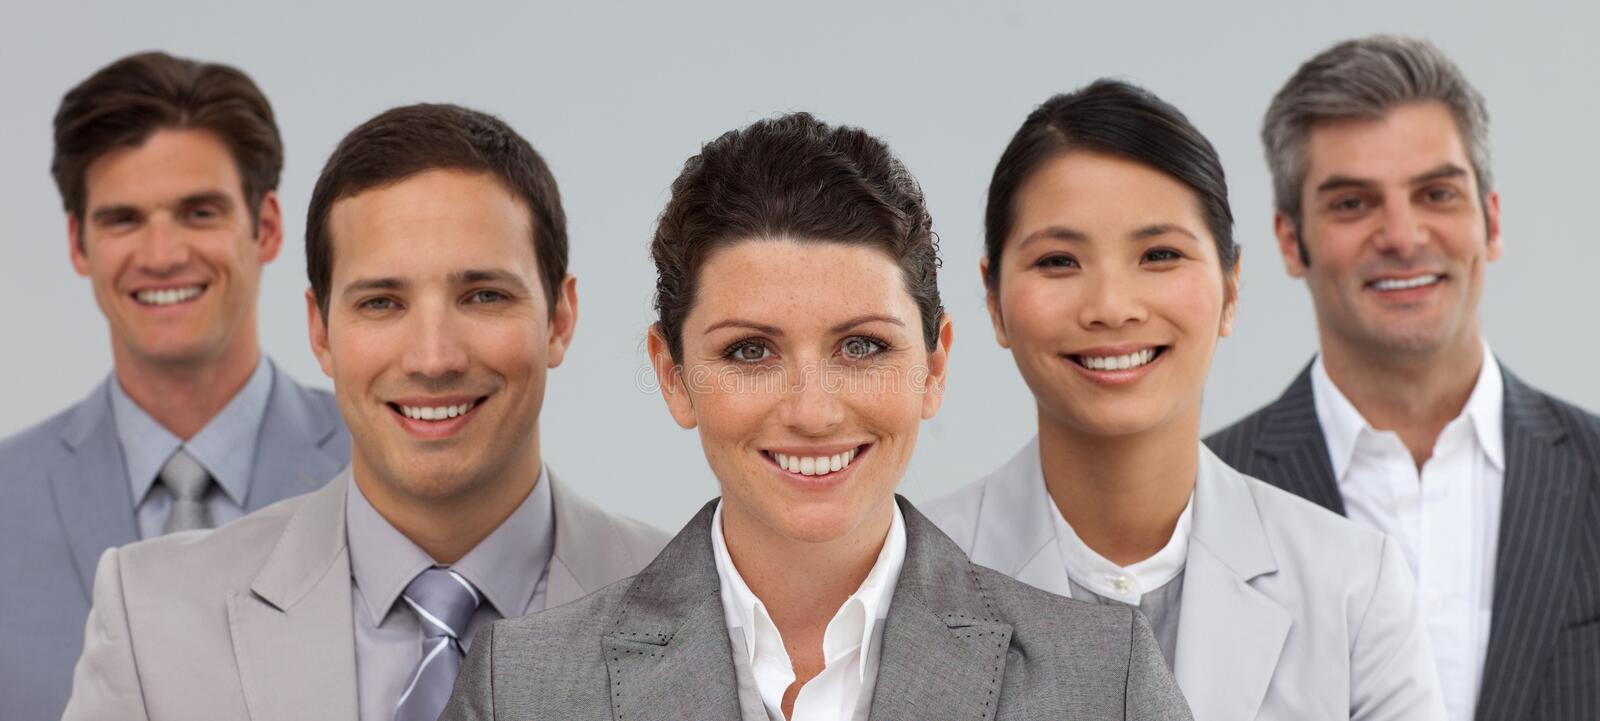 Download Business Group Showing Diversity Standing Together Stock Photo - Image: 12190820